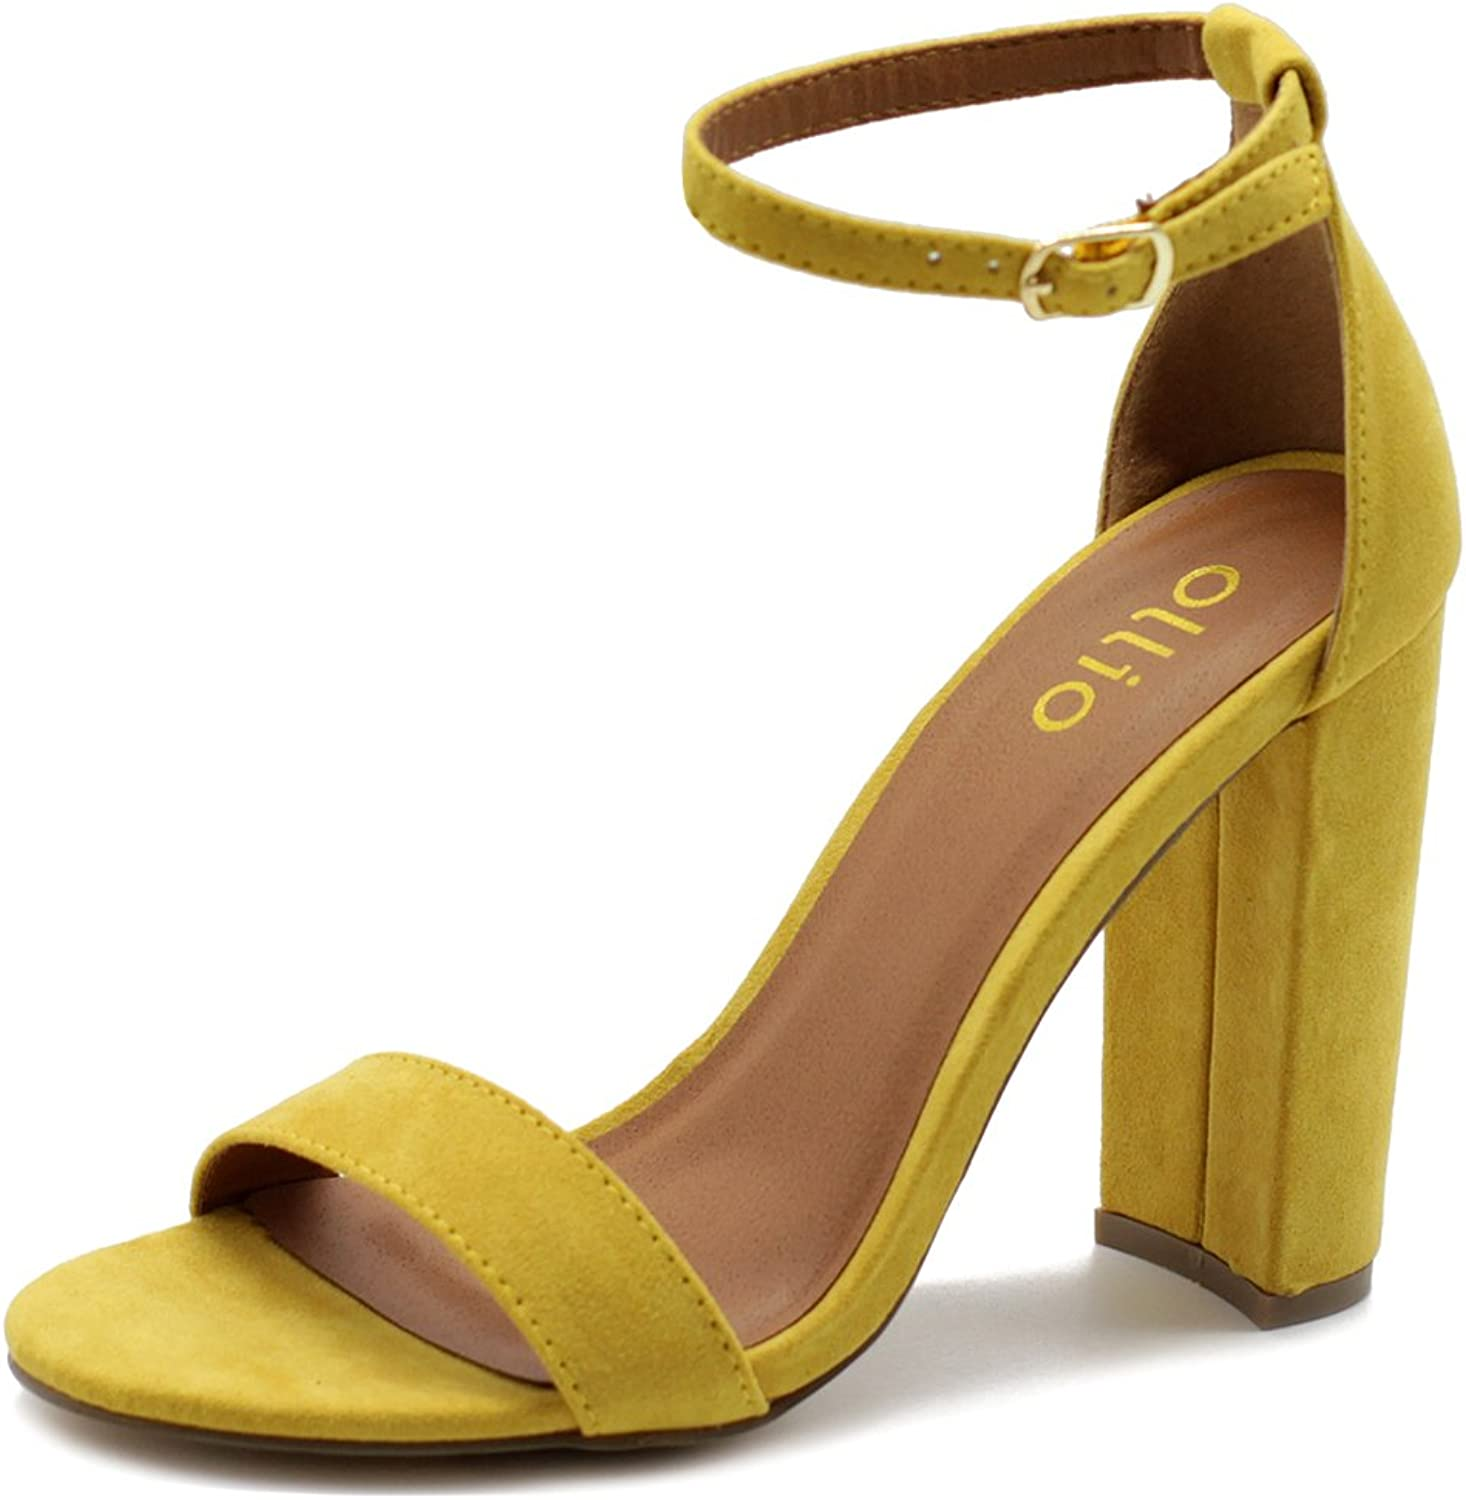 Ollio Womens shoes Faux Suede Simple Ankle Strap Chunky High Heel Sandals